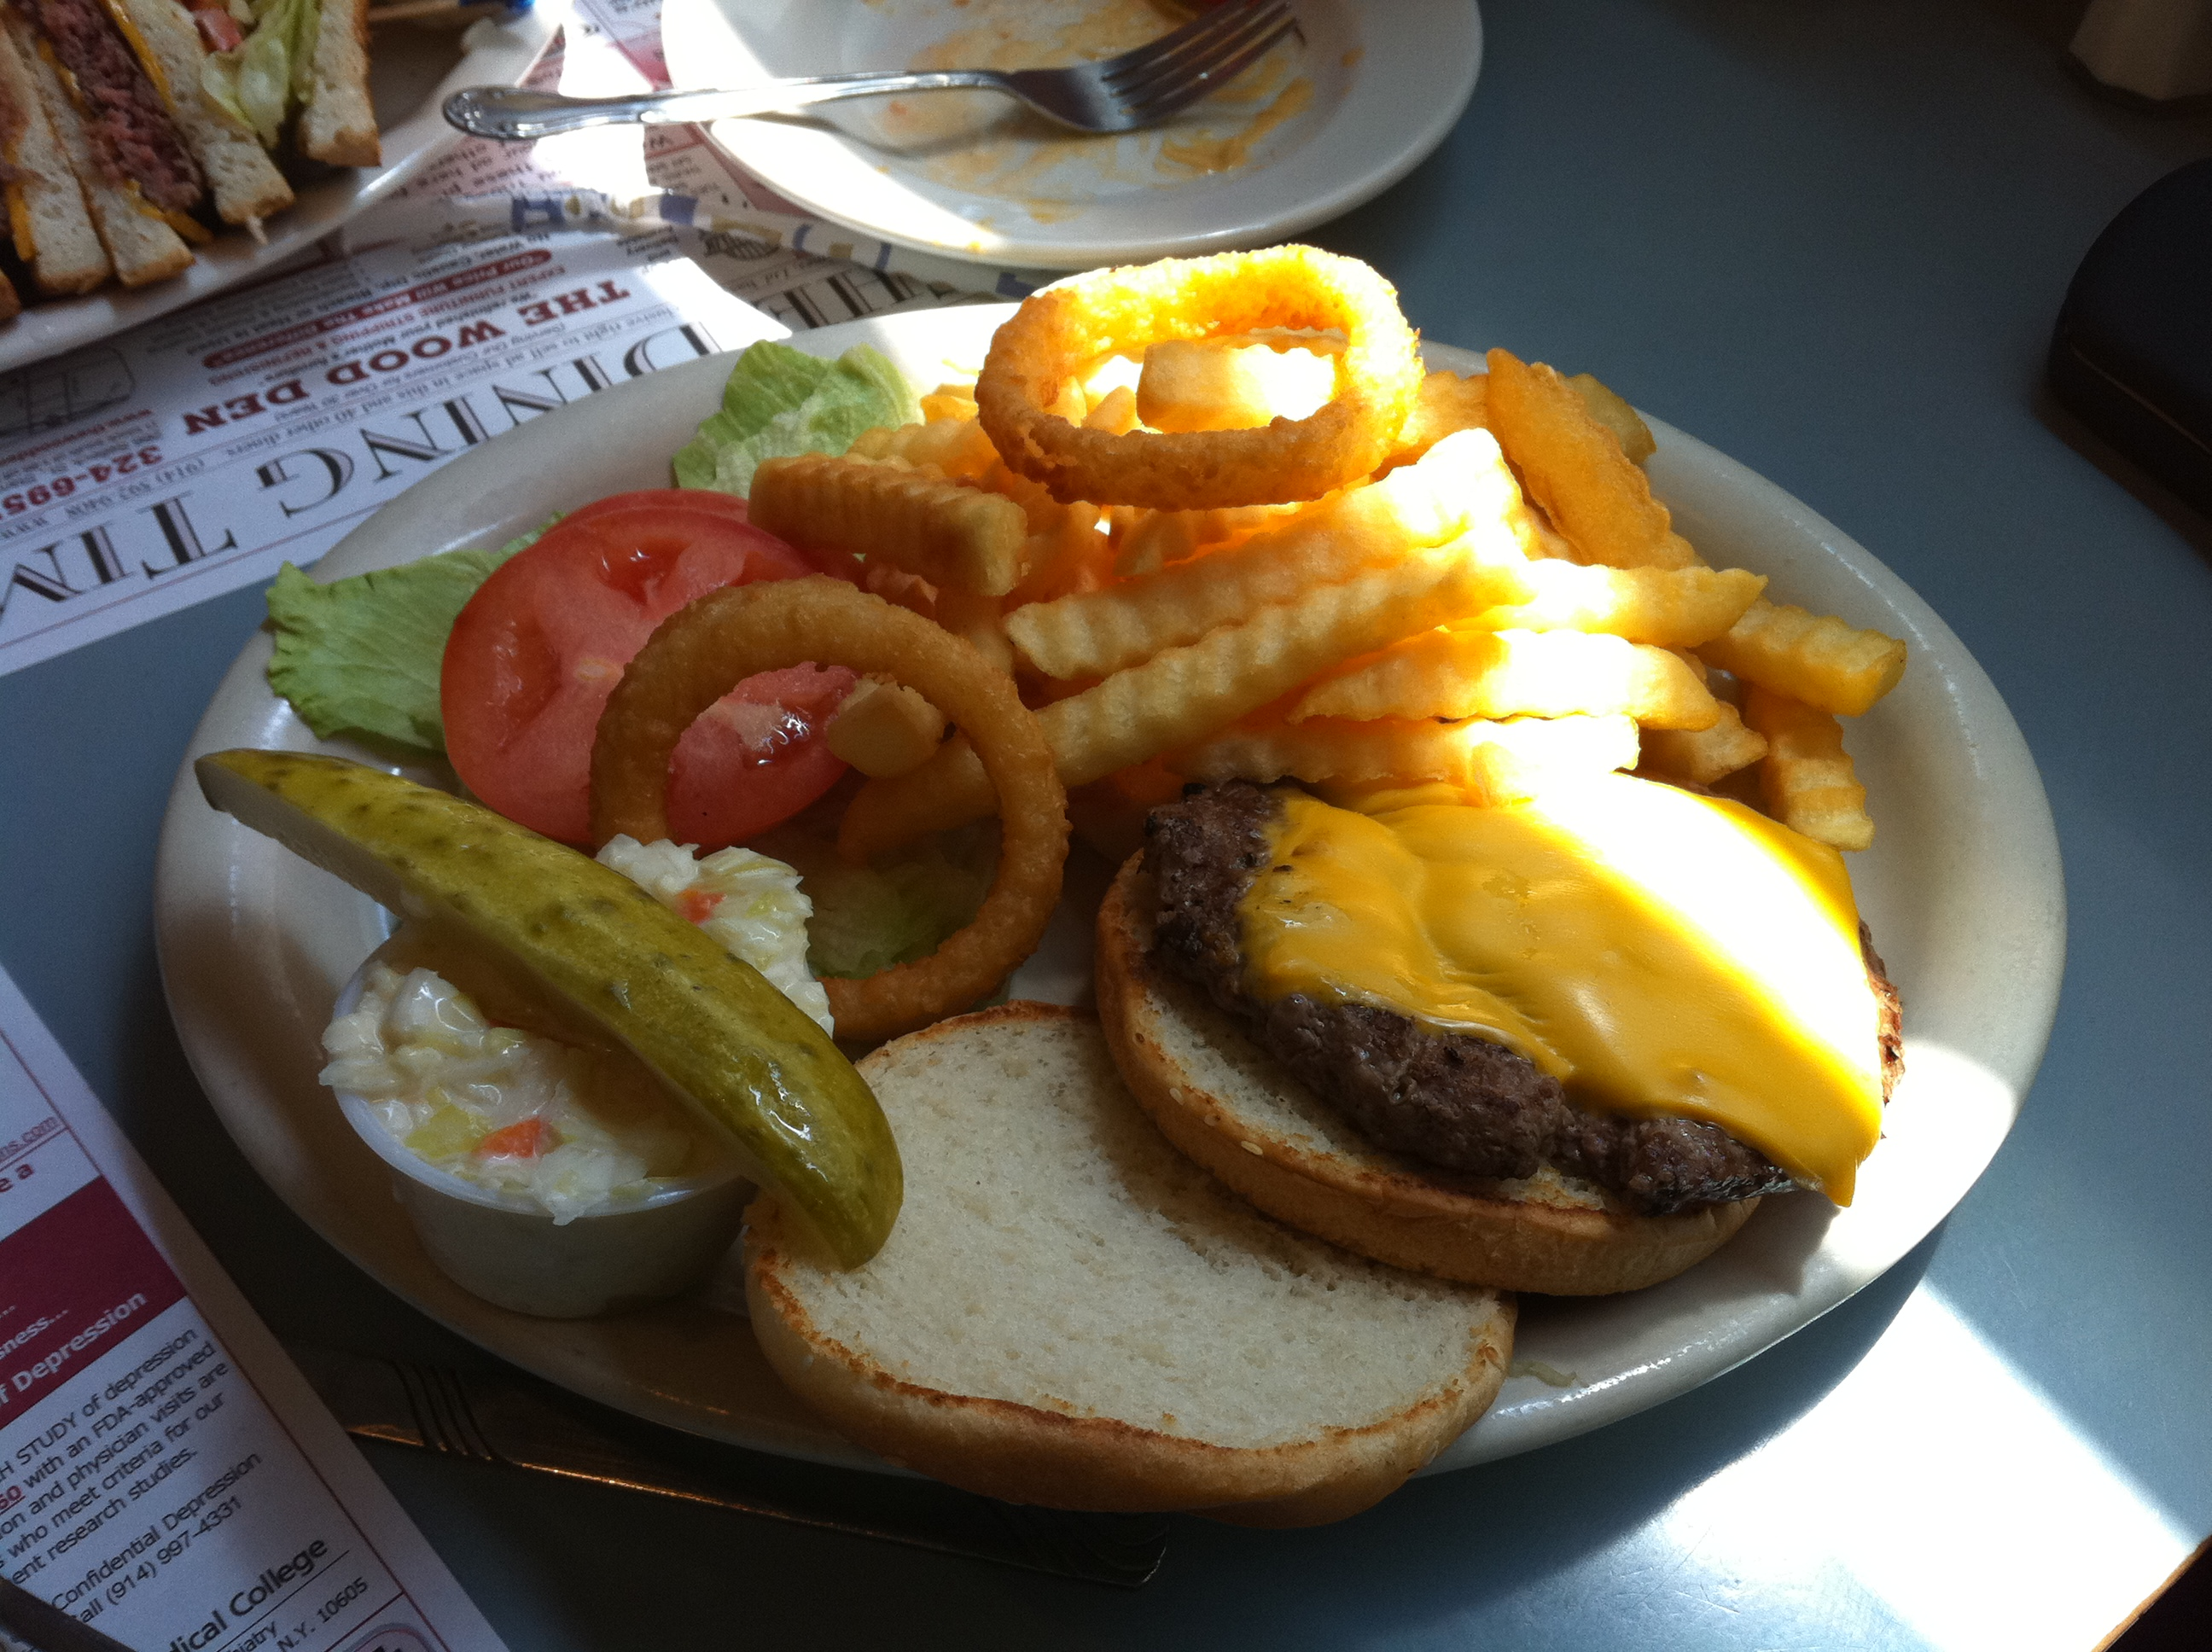 Photo: All-American cheeseburger & fries